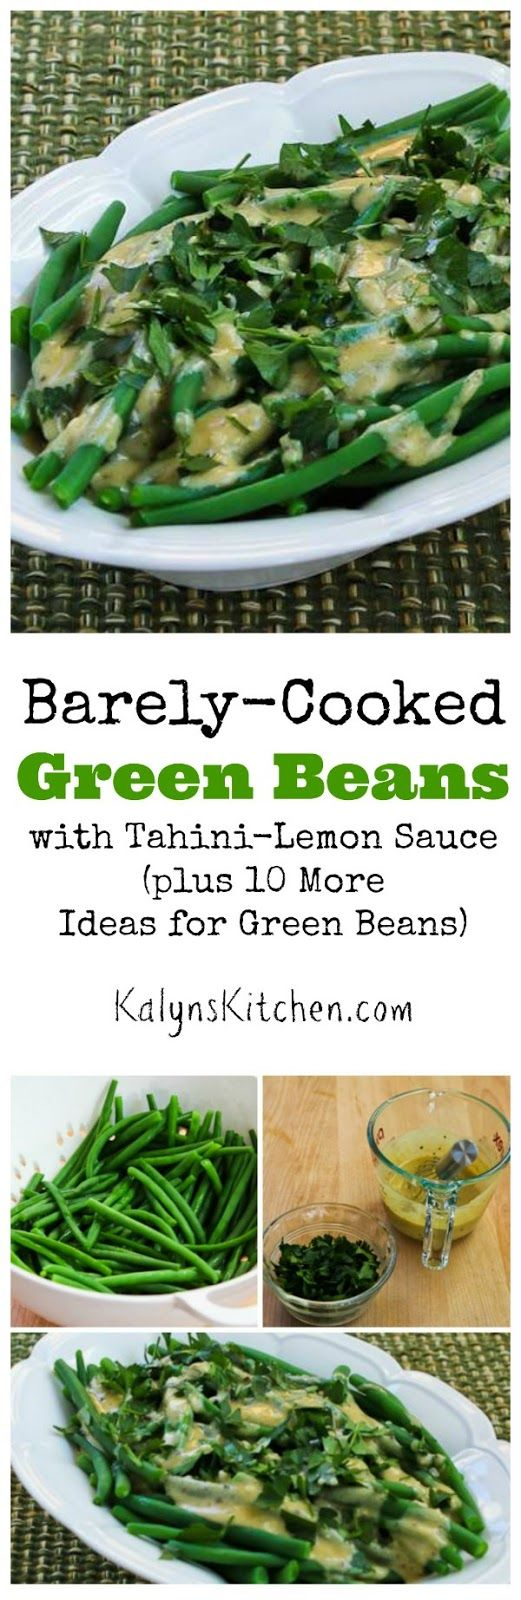 Barely-Cooked Green Beans with Tahini-Lemon Sauce are great for a holiday side dish, plus this post has 10 more amazing green beans recipes! [found on KalynsKitchen.com]